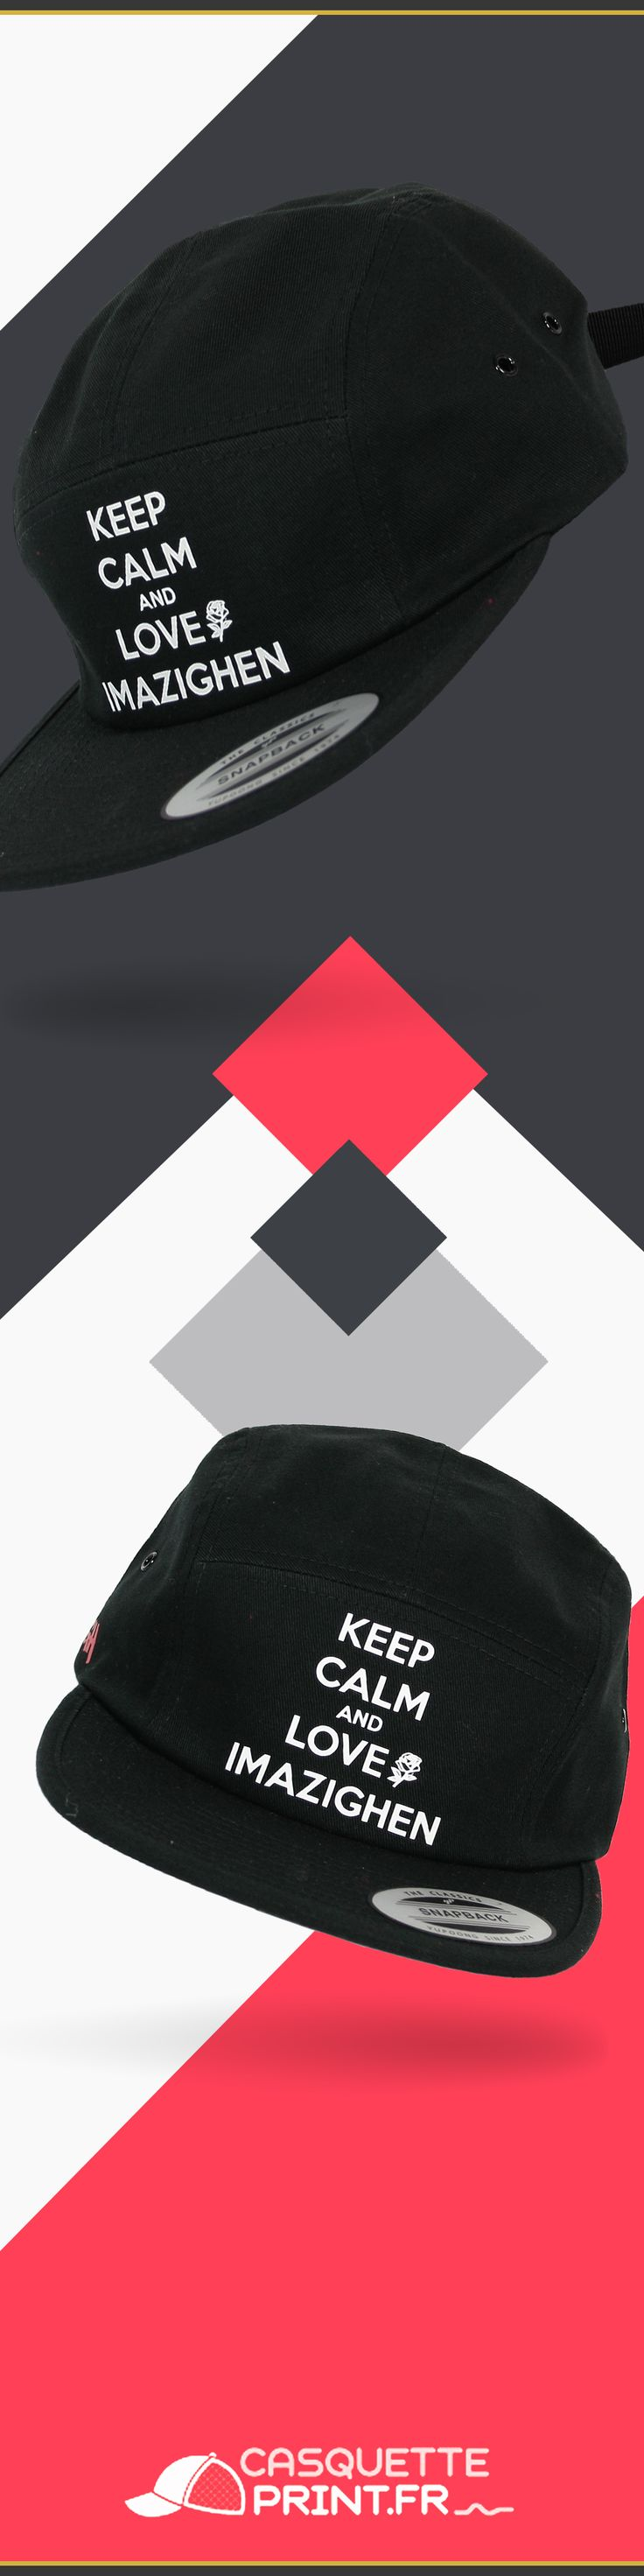 #entreprise #casquette #bonnet #trucker #snapback #yupoong #particulier #goodies #mode #fashion #association #five panel hat #five panel door #five panel cap #five panel men #five panel outfit #five panel interior #five panel art #five panel products #five panel wall art  #five panel accessories #five panel black #five panel shops #five panel love #five panel teepees #five panel floral